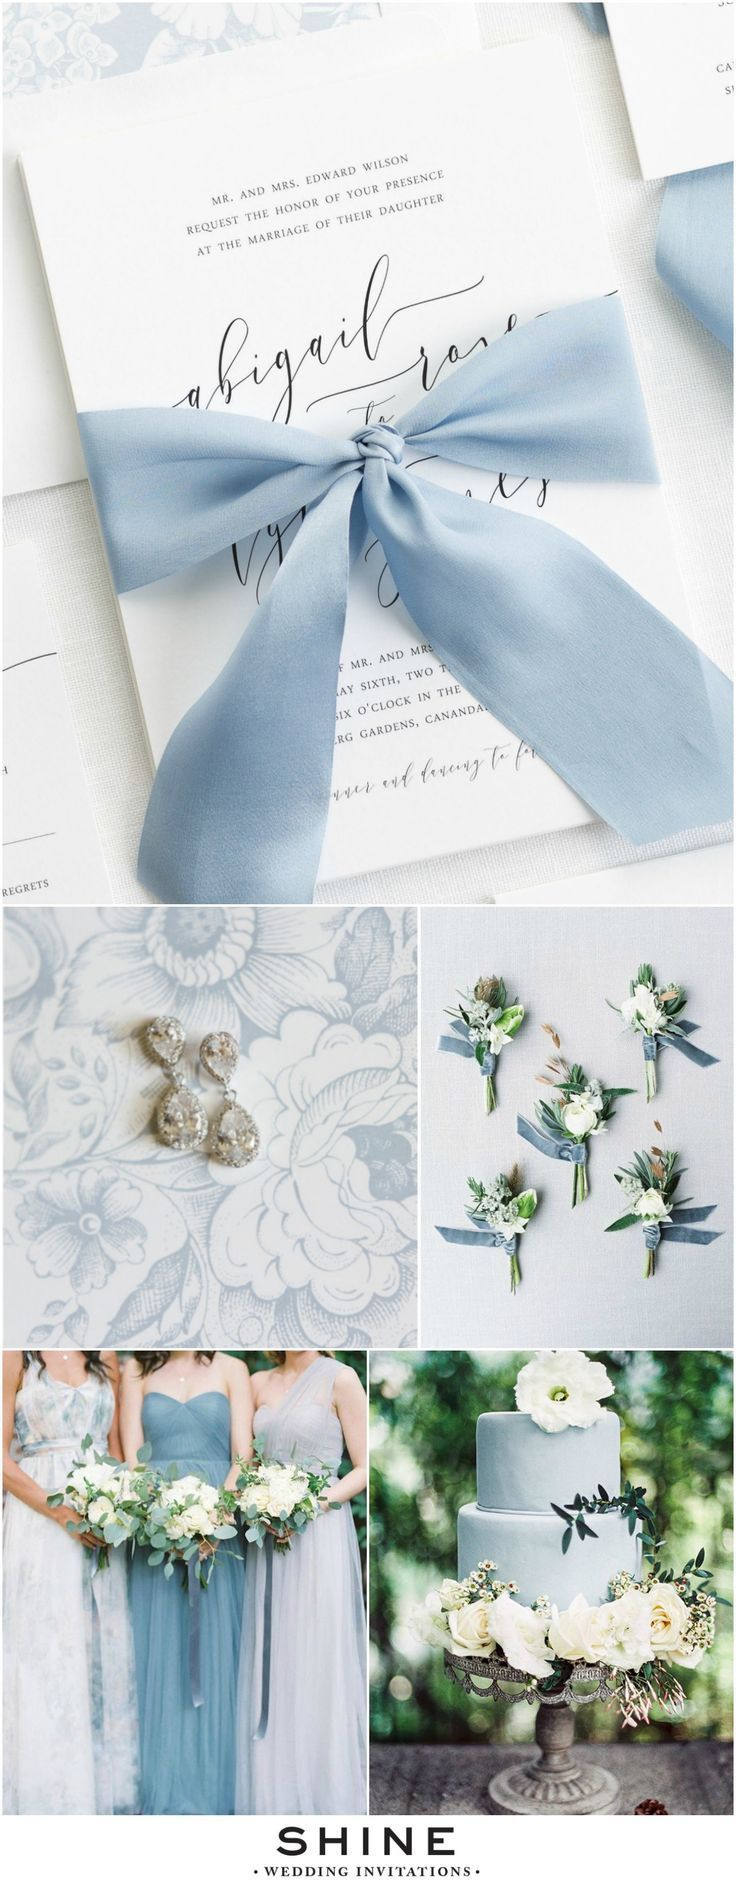 Dusty Blue and Gray Wedding Inspiration | Romantic Dusty Blue Wedding Invitations with Modern Calligraphy and a custom dyed 100% silk charmeuse ribbon | Floral Envelope Liner, Dusty Blue Bridesmaids Dresses, Blue Cake, Velvet Boutonnieres